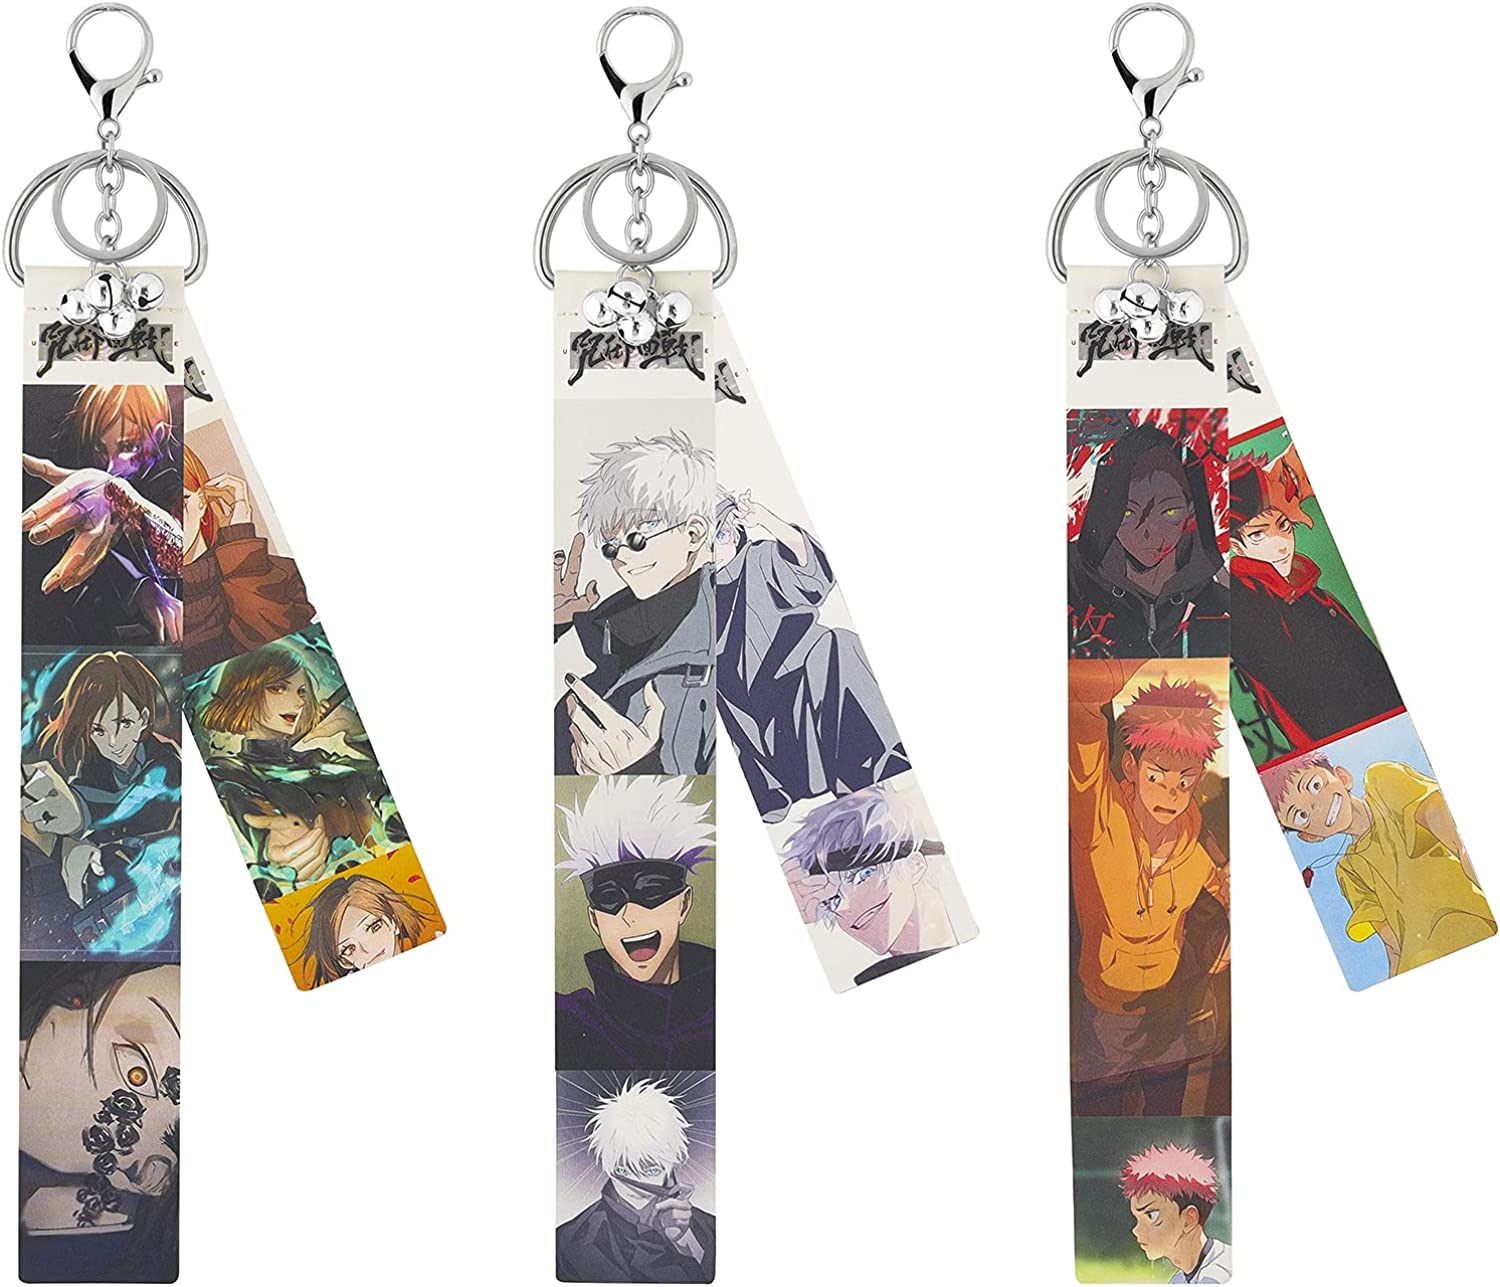 3Pcs Jujutsu Kaisen Keychain Cosplay,Leather Material Keychain Exquisite Ornaments Gift for Anime Fans